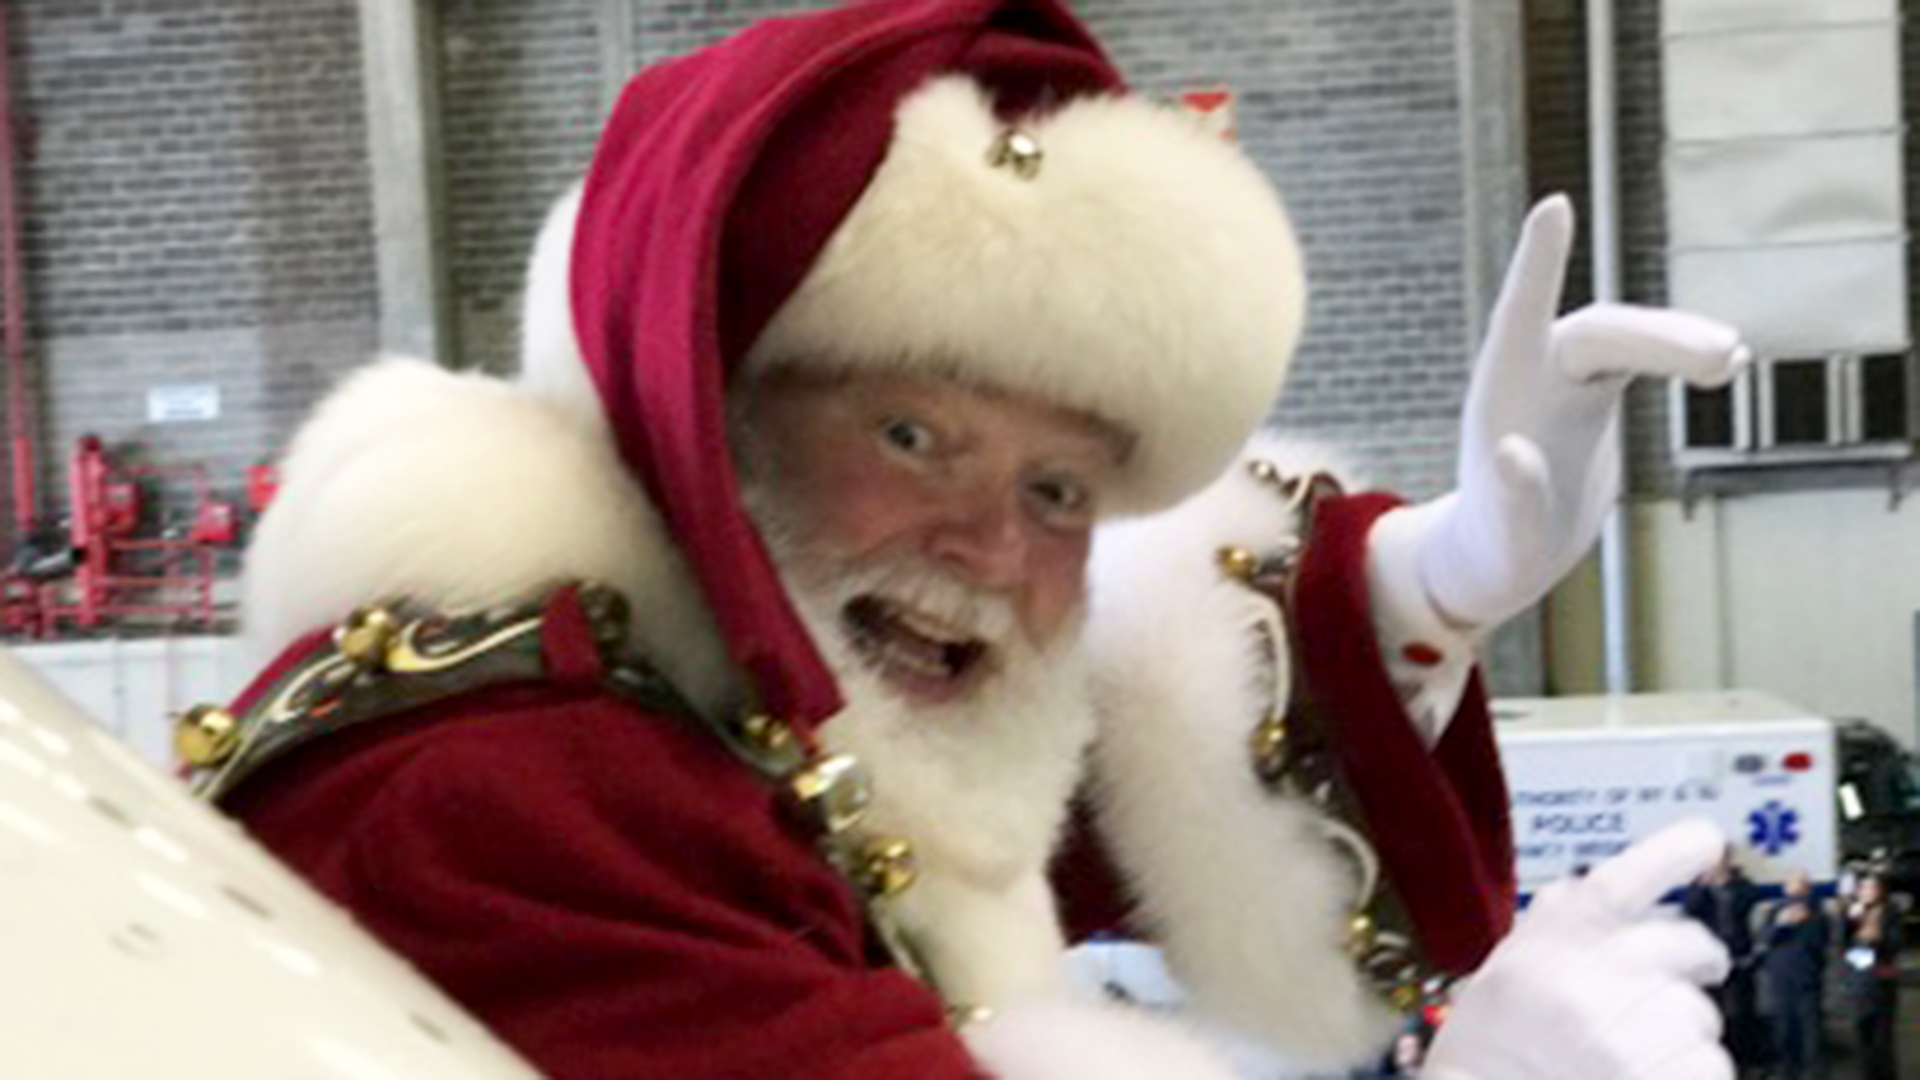 santa greets 4000 children with special needs at operation santa claus event todaycom - Santa Claus Santa